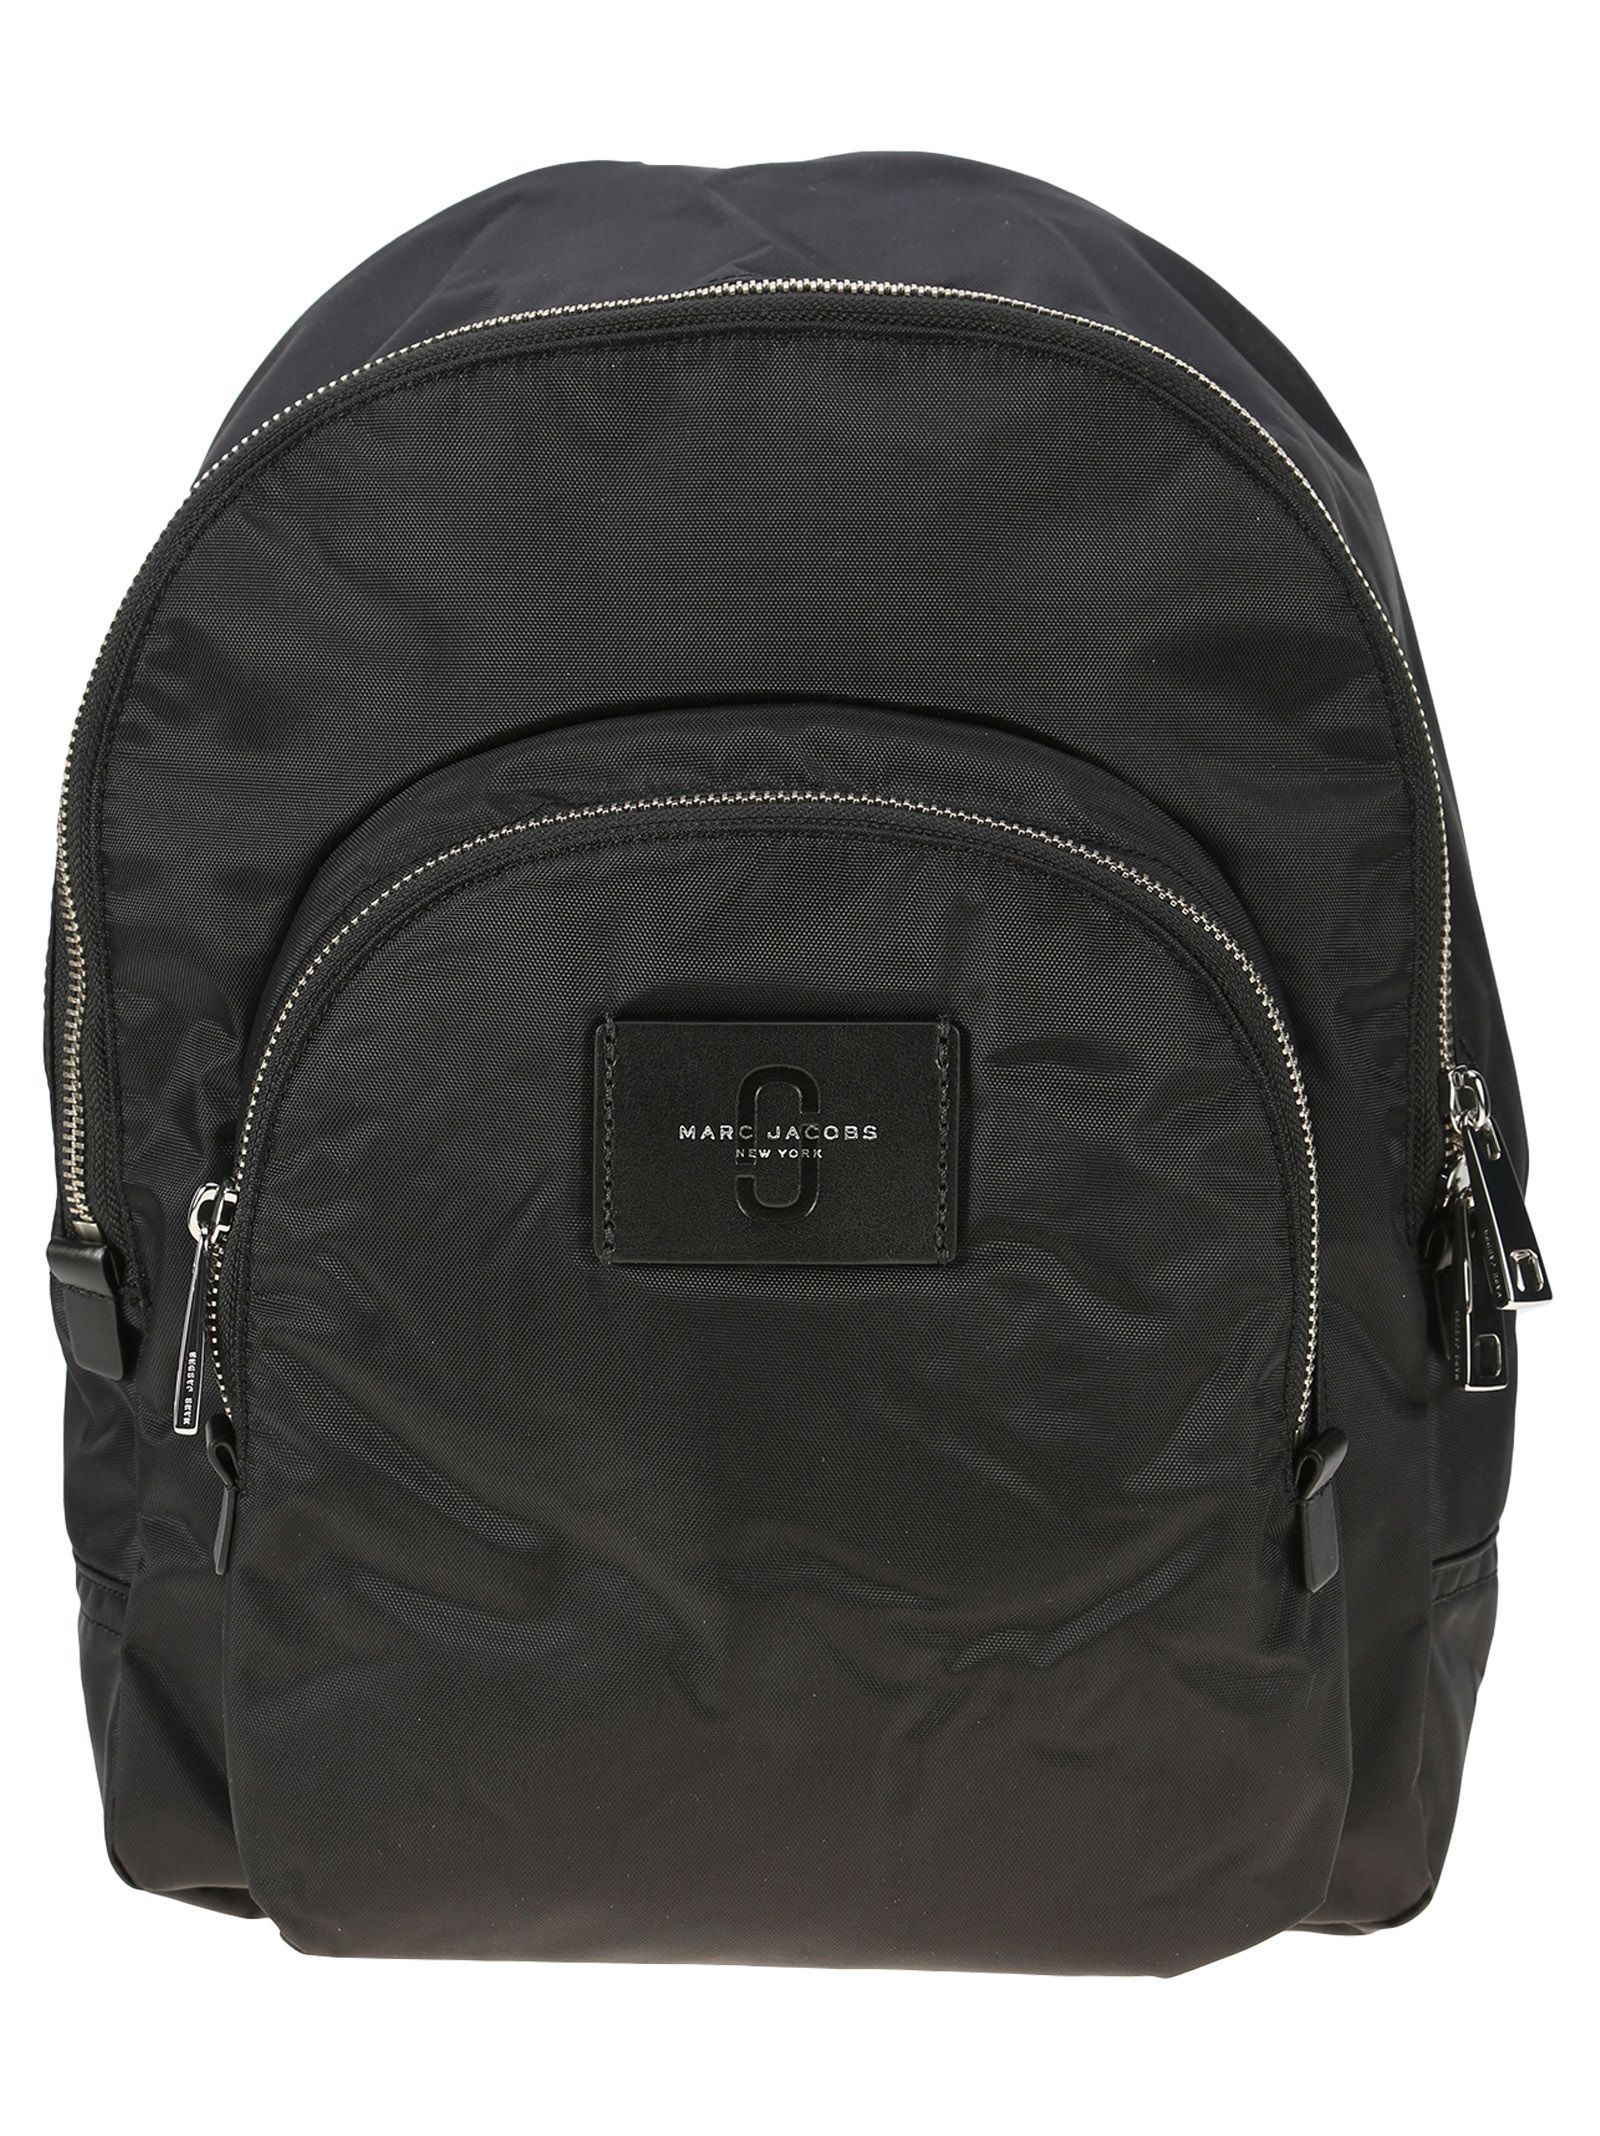 round top backpack - Black Marc Jacobs gL8acoGK